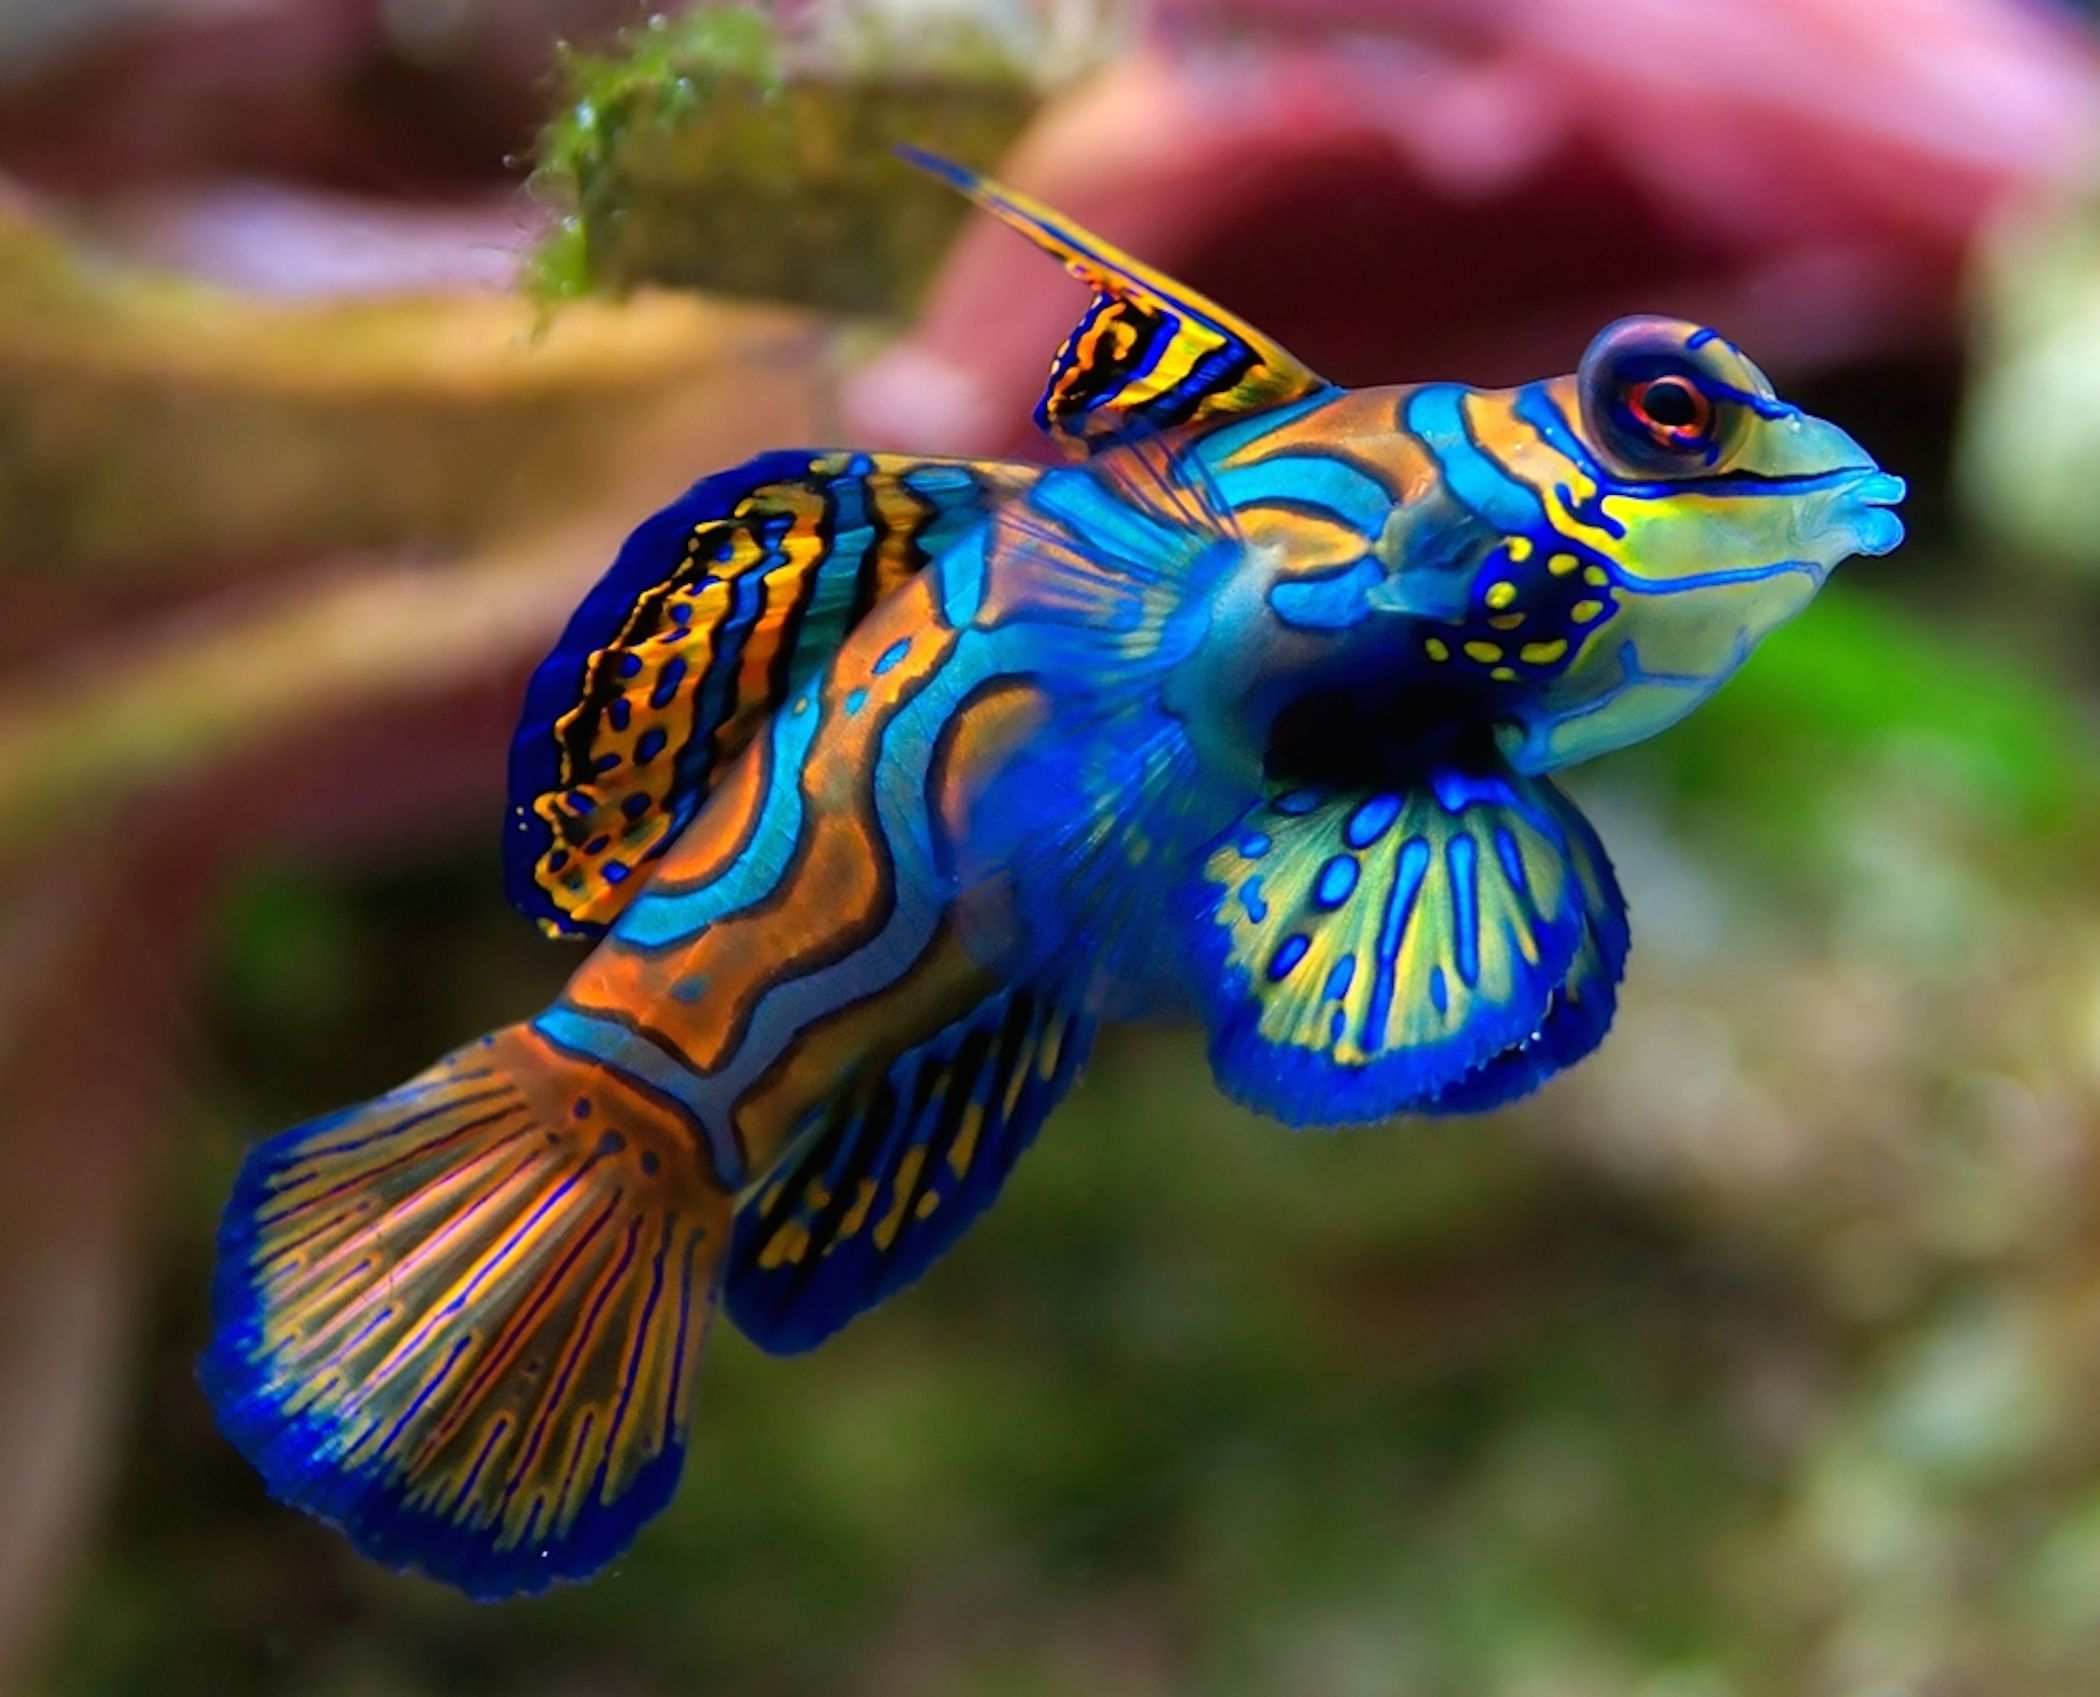 Top 10 Most Colorful Animals In The World